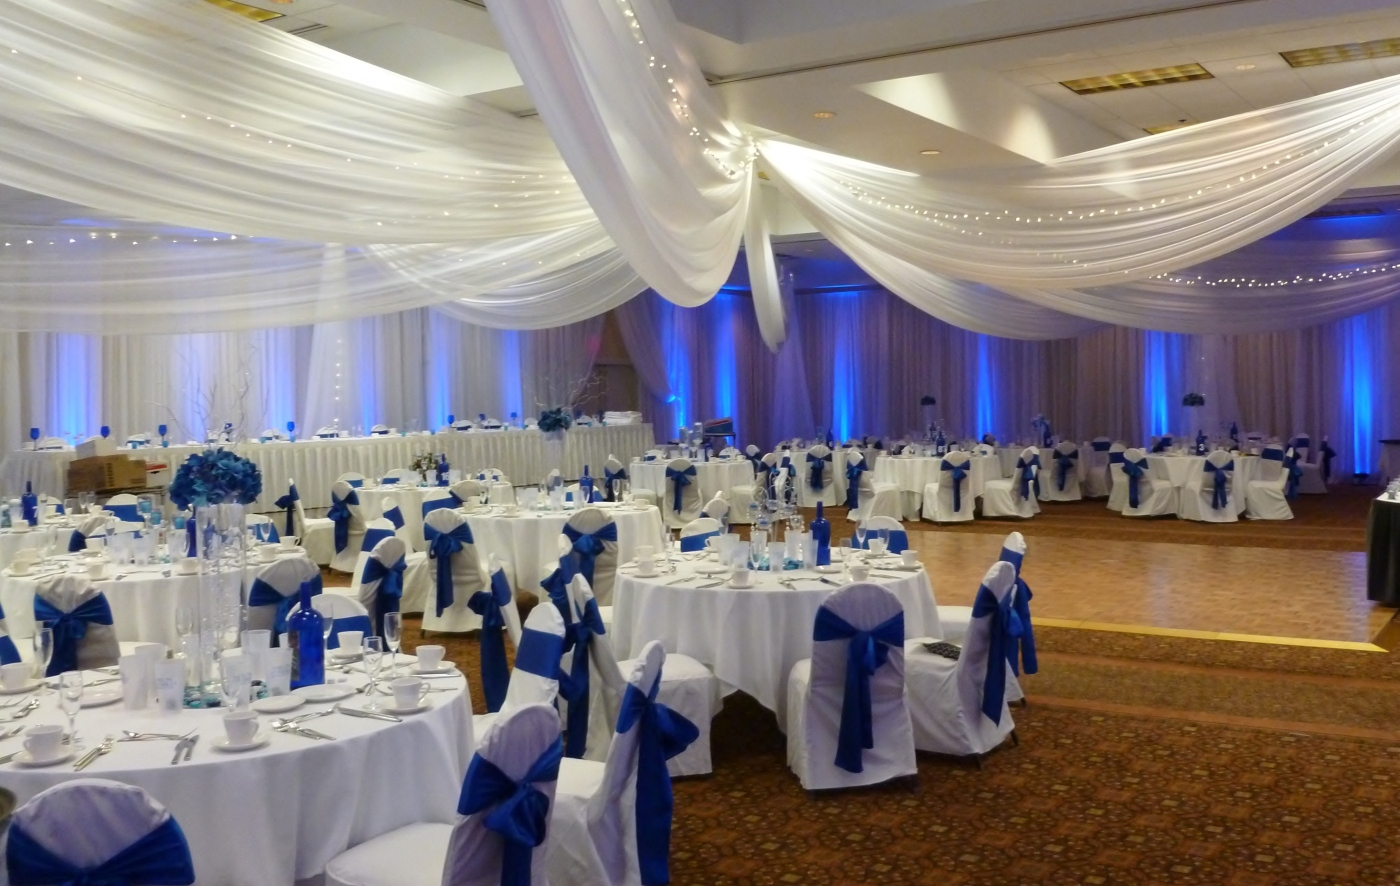 Simply Elegant Chair Covers And Linens Cover